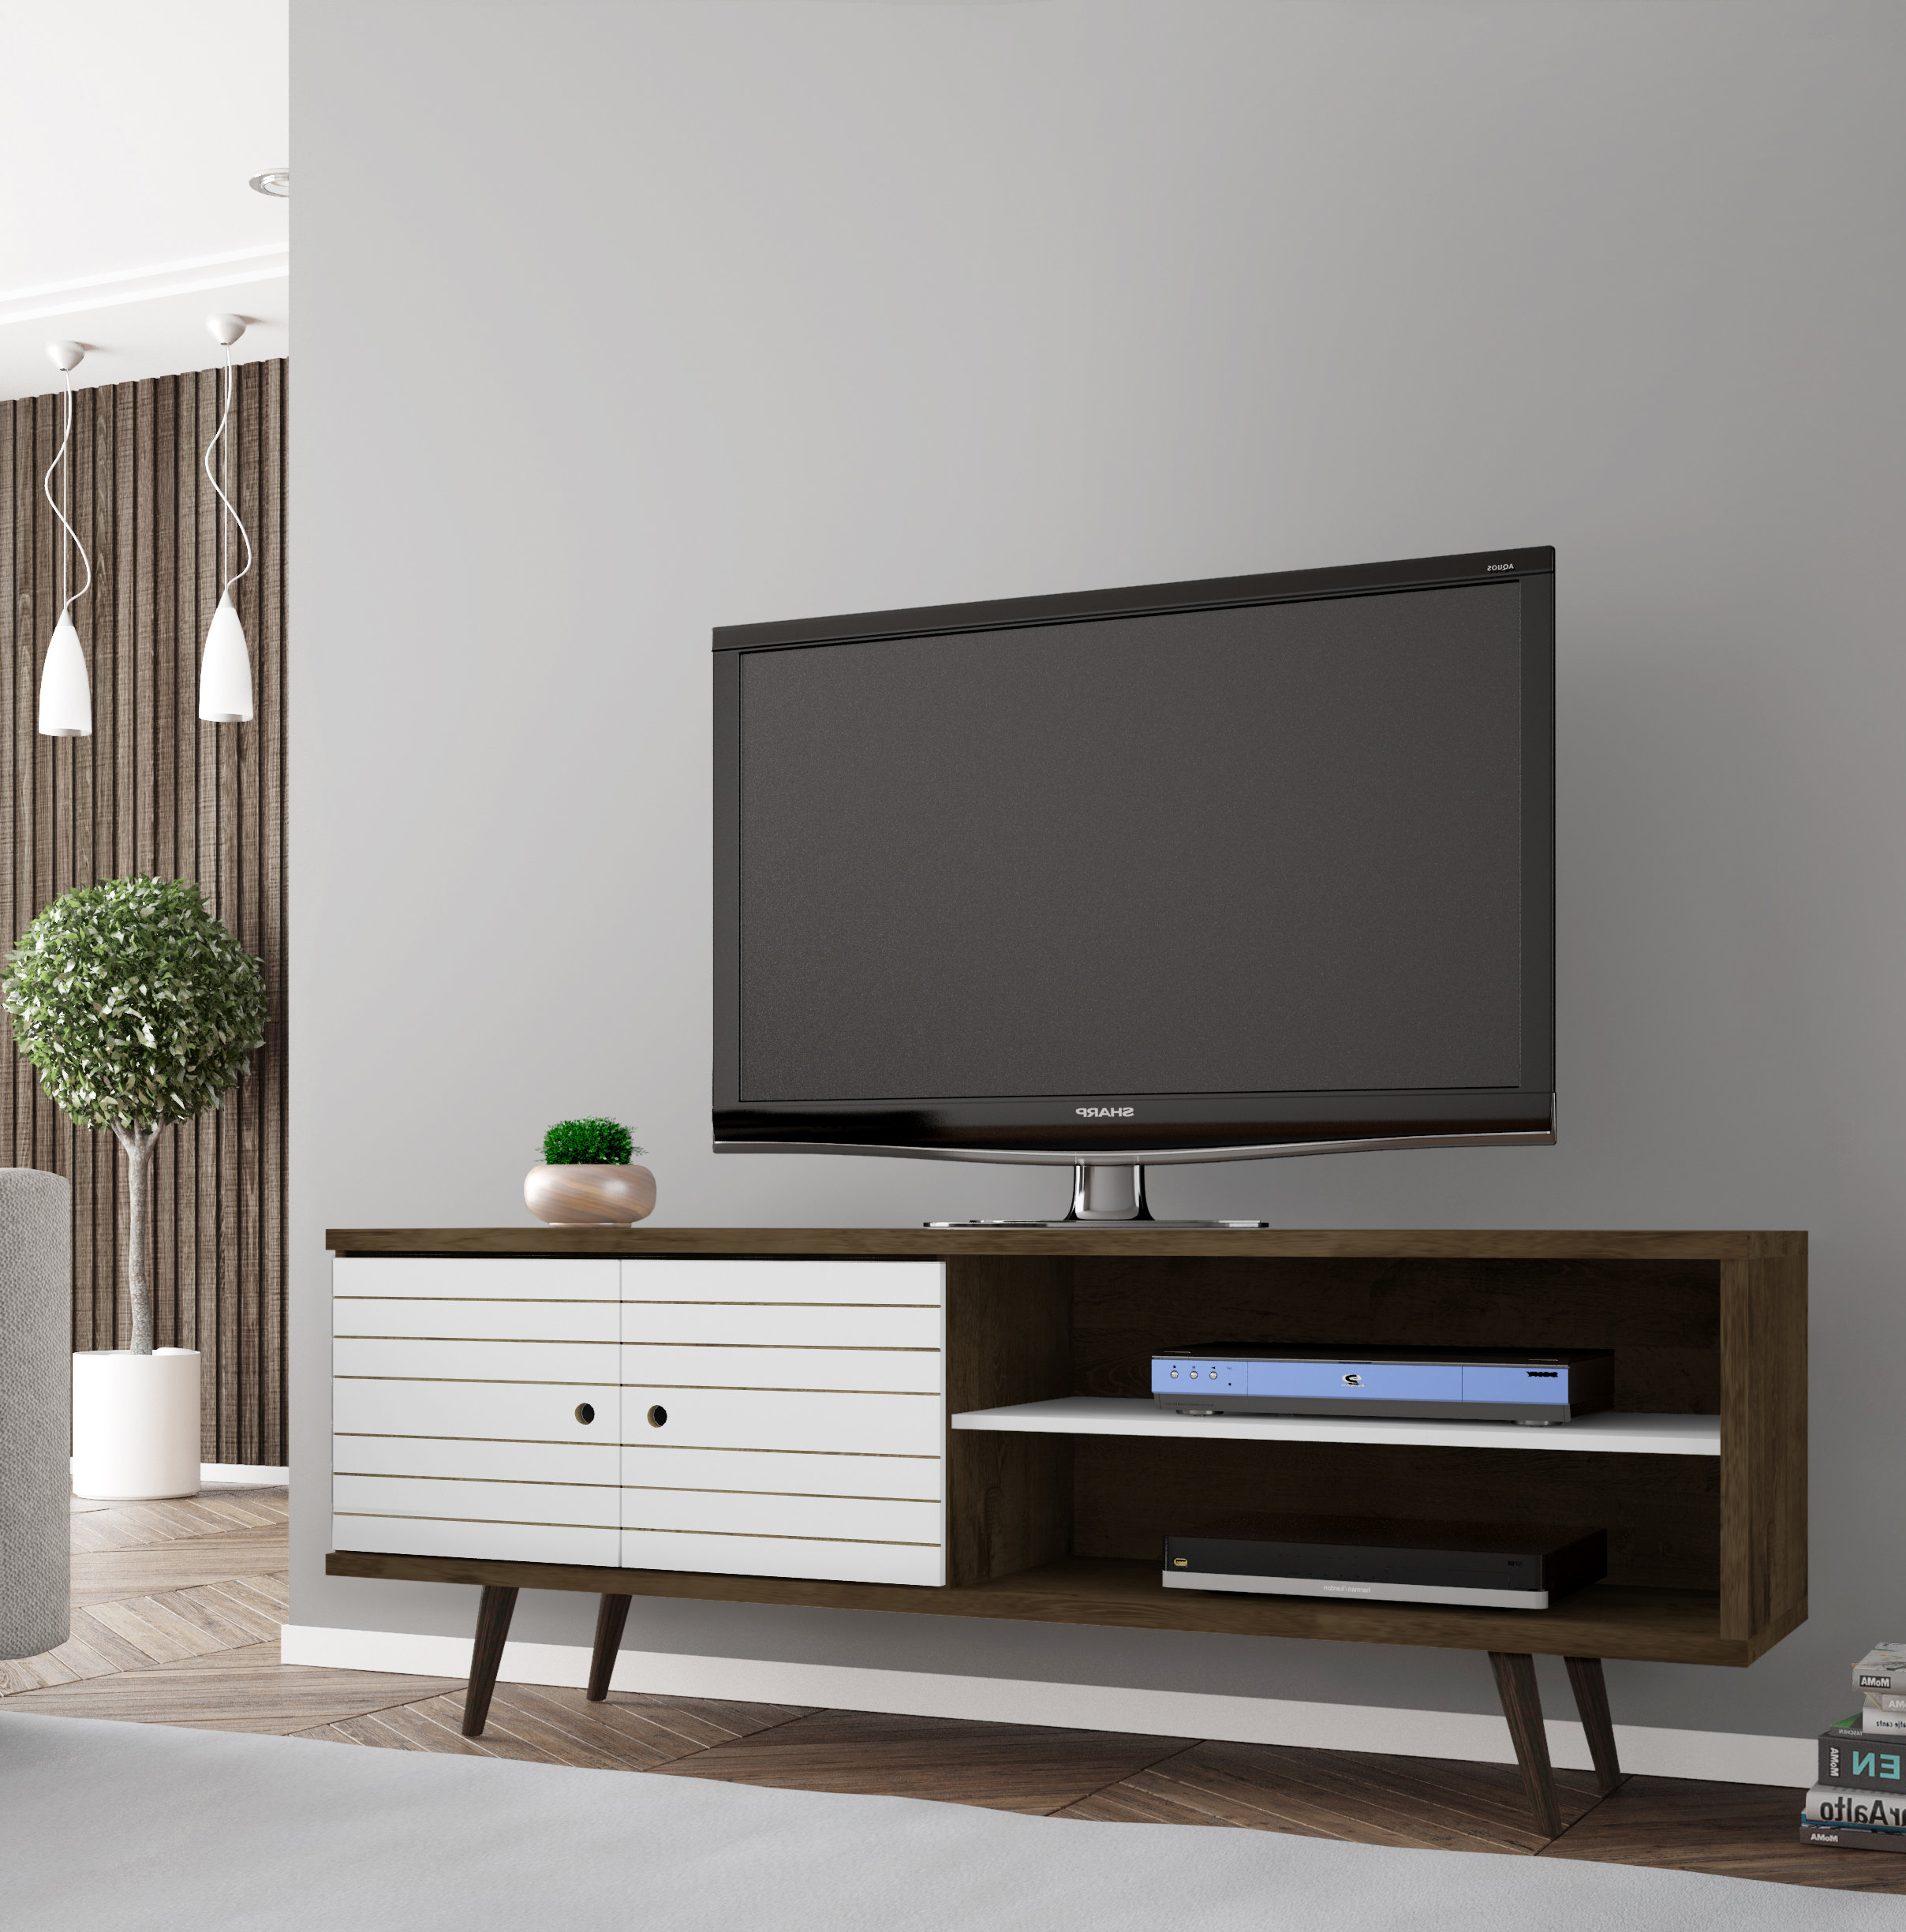 Wayfair With Regard To Favorite Combs 63 Inch Tv Stands (View 20 of 20)